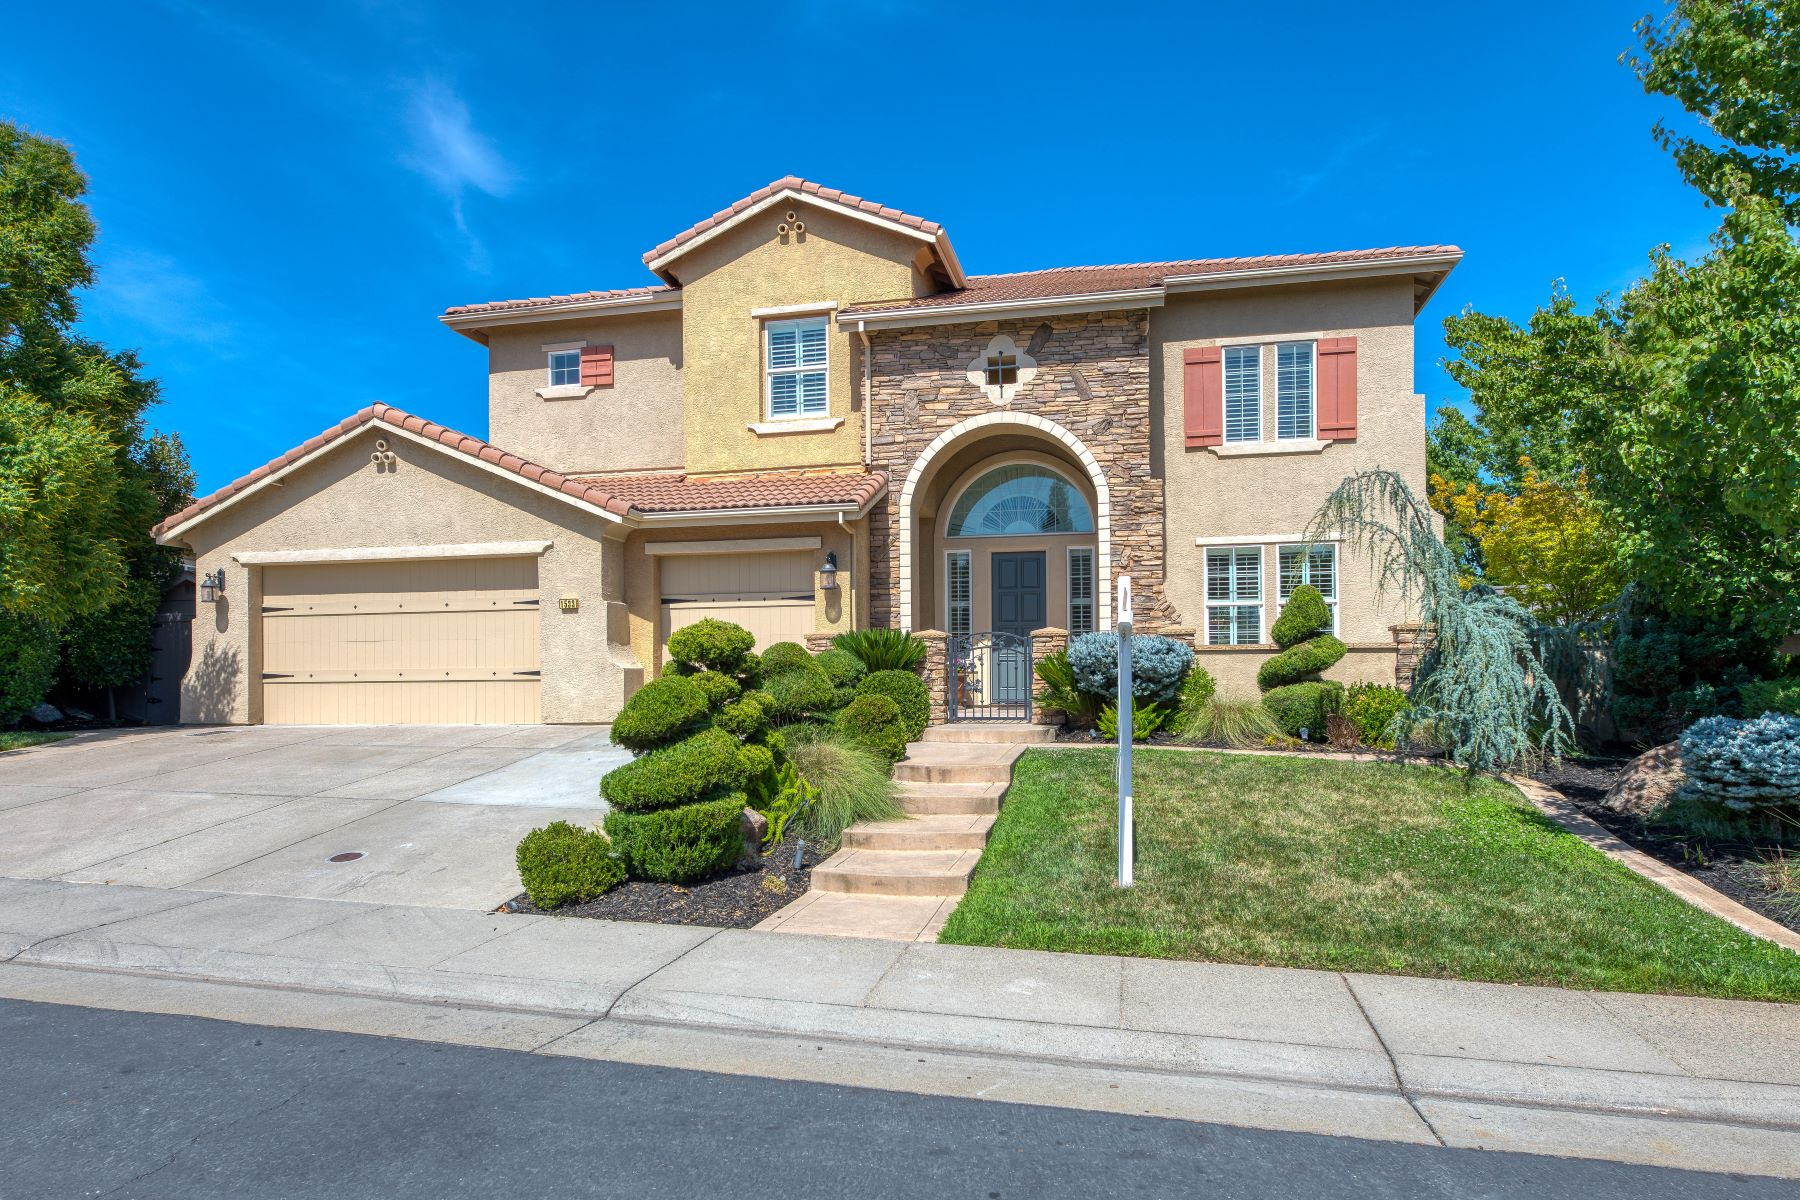 Single Family Homes por un Venta en 1533 Woodgrove Way, Roseville, CA 95661 1533 Woodgrove Way Roseville, California 95661 Estados Unidos